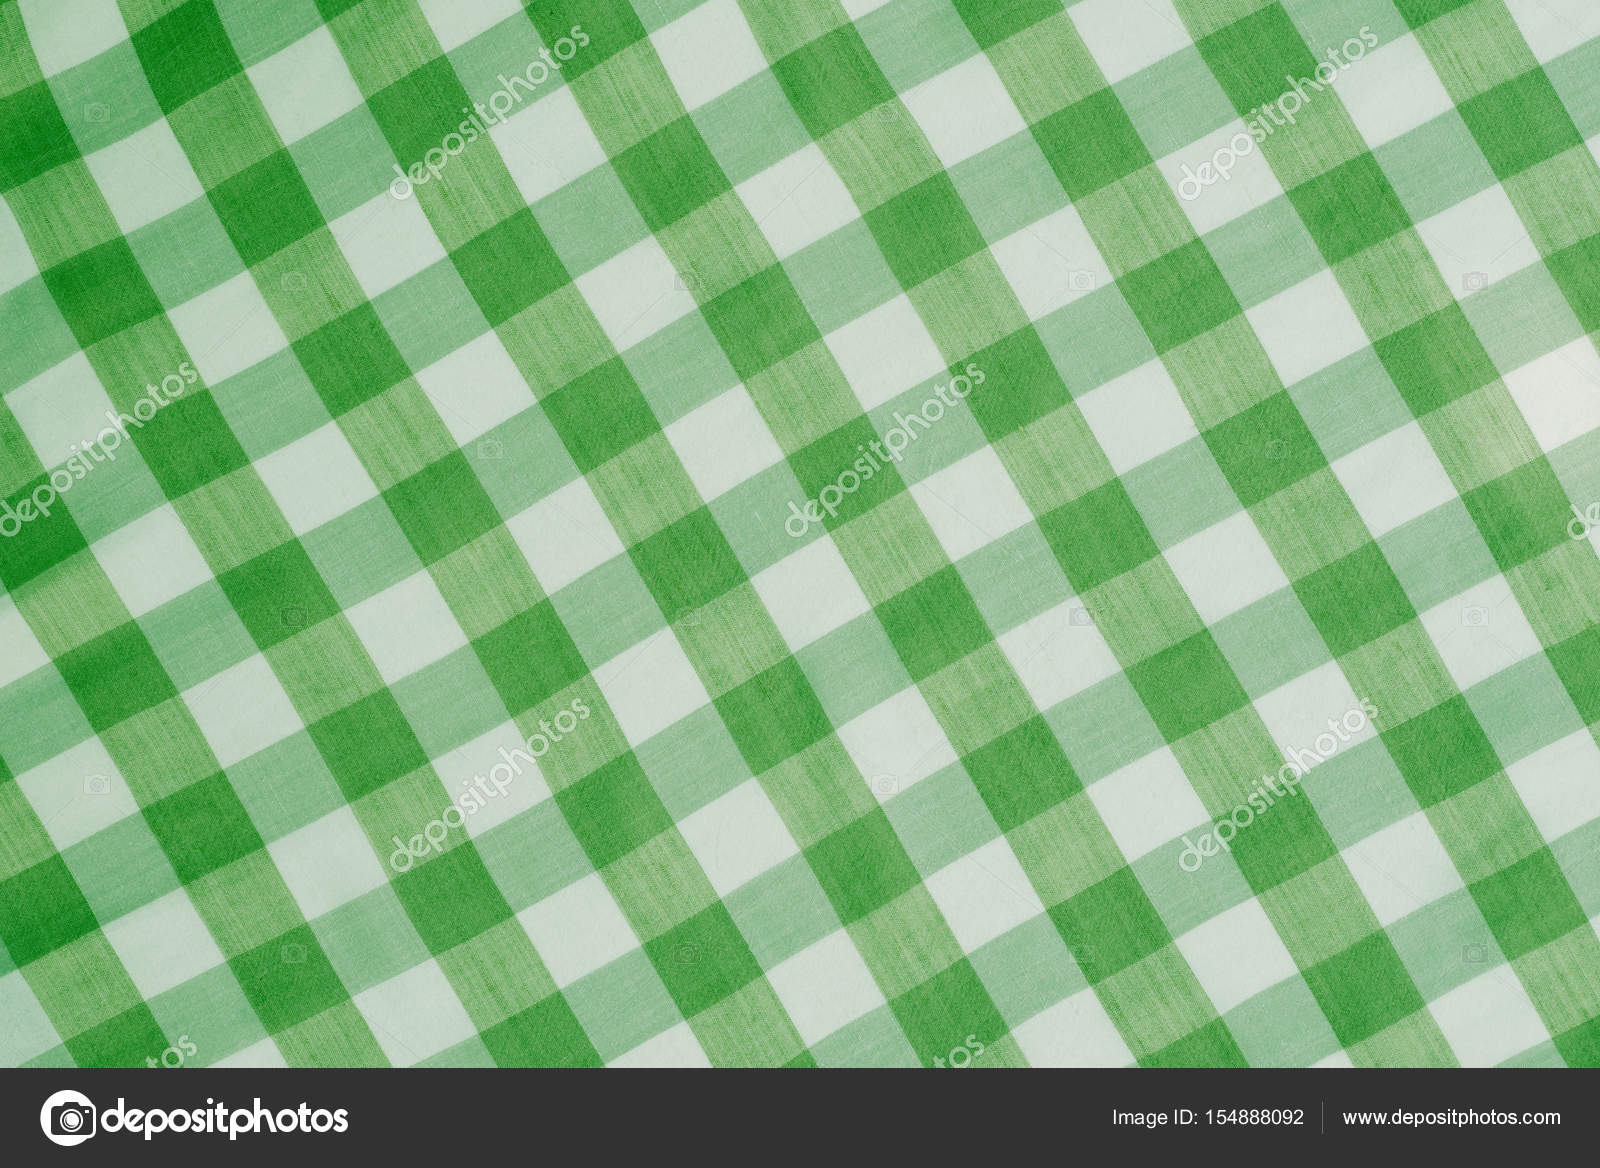 Green Checkered Tablecloth Background U2014 Stock Photo #154888092